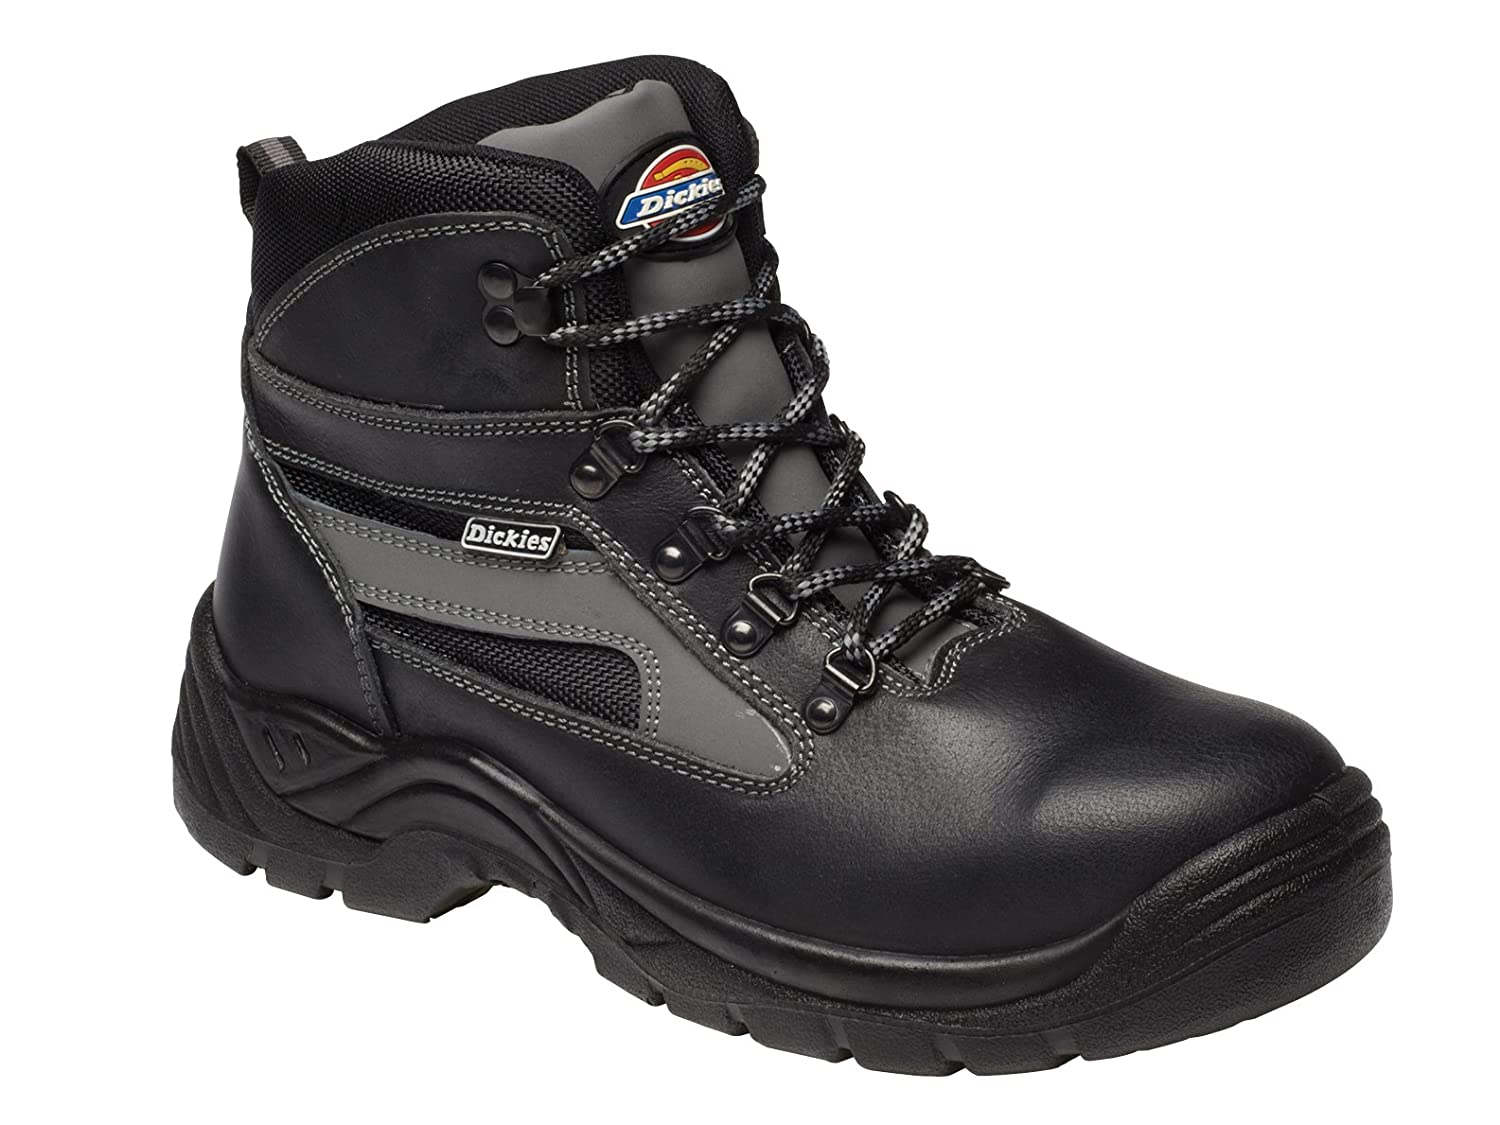 Dickies Severn Super Safety Boots S3